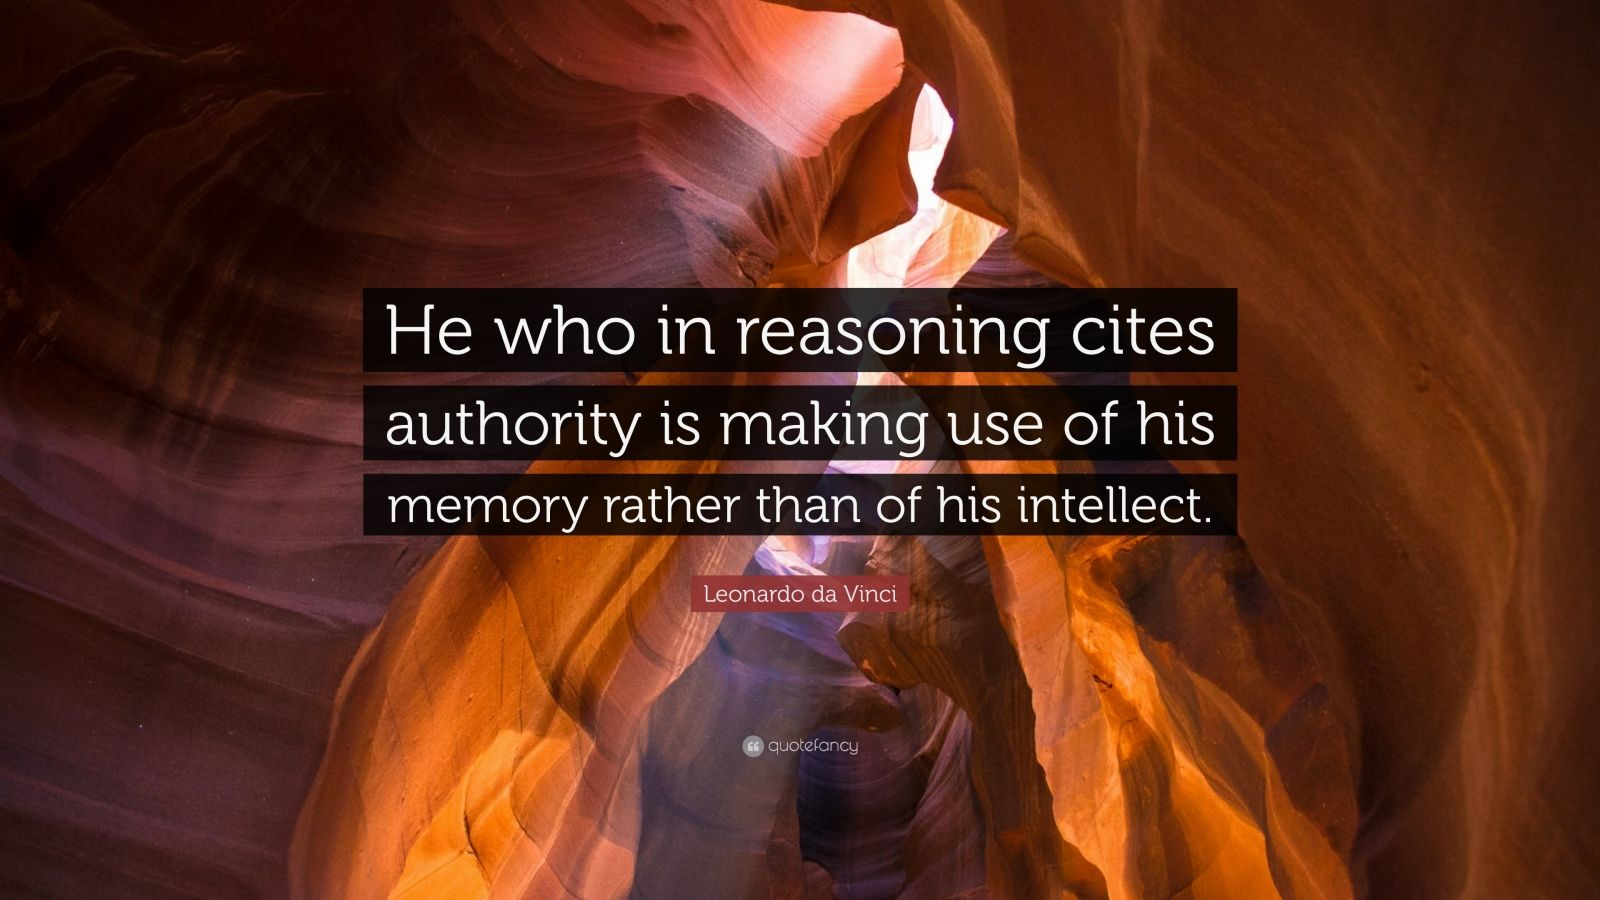 """Leonardo da Vinci Quote: """"He who in reasoning cites authority is making use of his memory rather than of his intellect."""""""